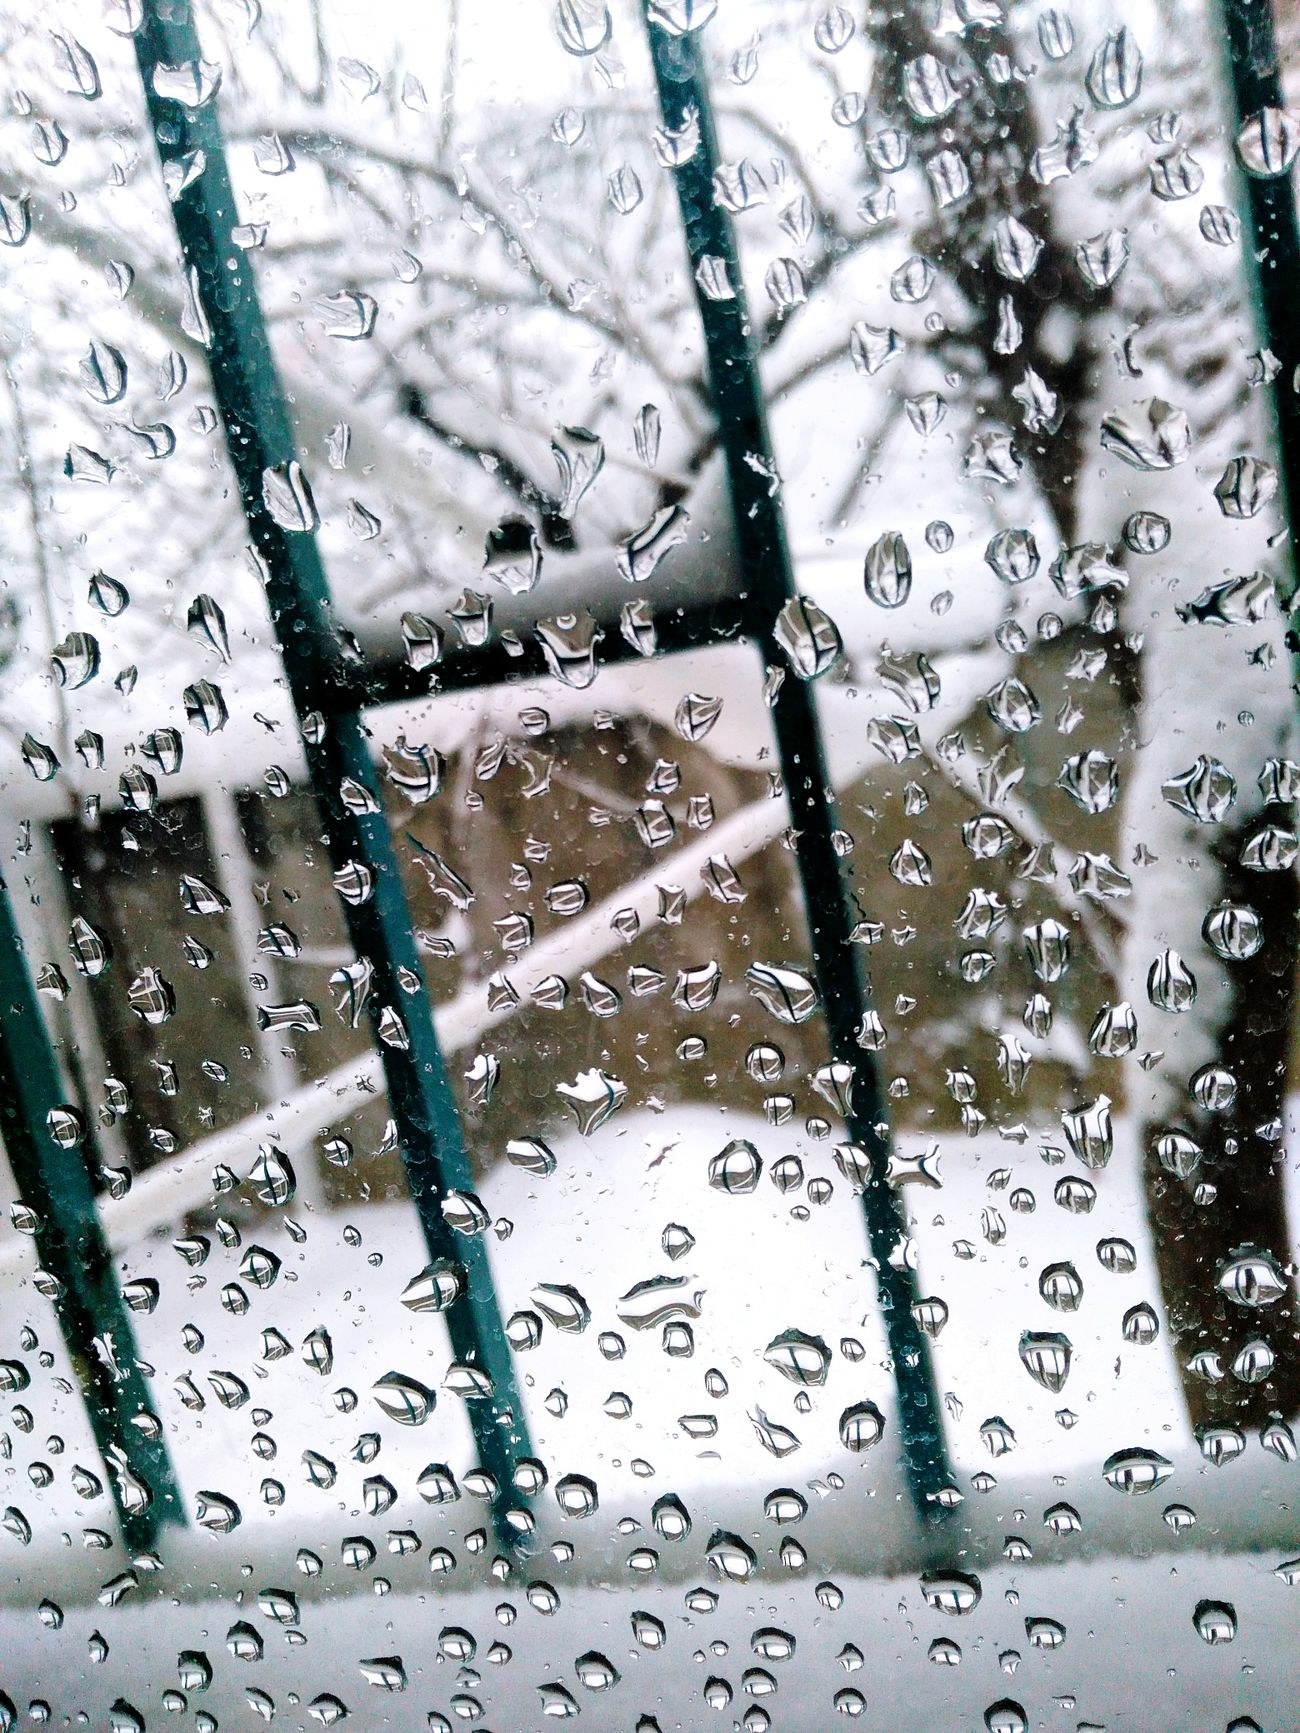 Winteriscoming Snow Wintertime White ❄ ❄ Snowflakes ❄ ❄ It's So Cold . ❄️frozen❄️ ❄❄ Very Cold Nature LoveNature Darkness And Light